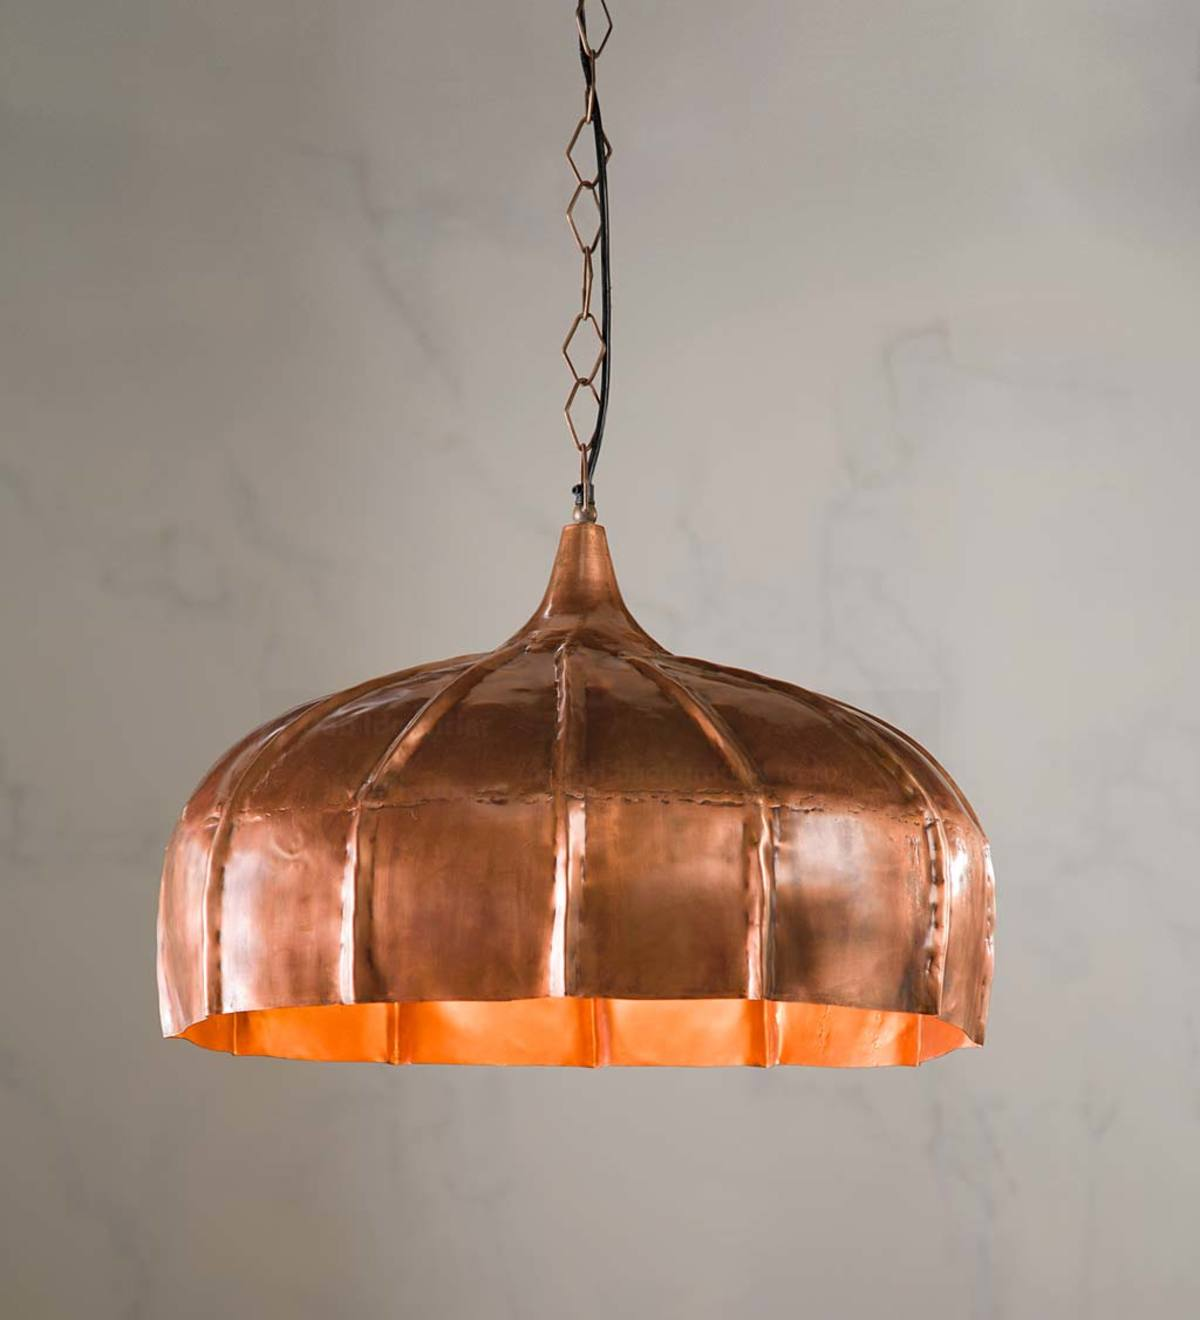 Oblong Hanging Lamp - Copper Finish